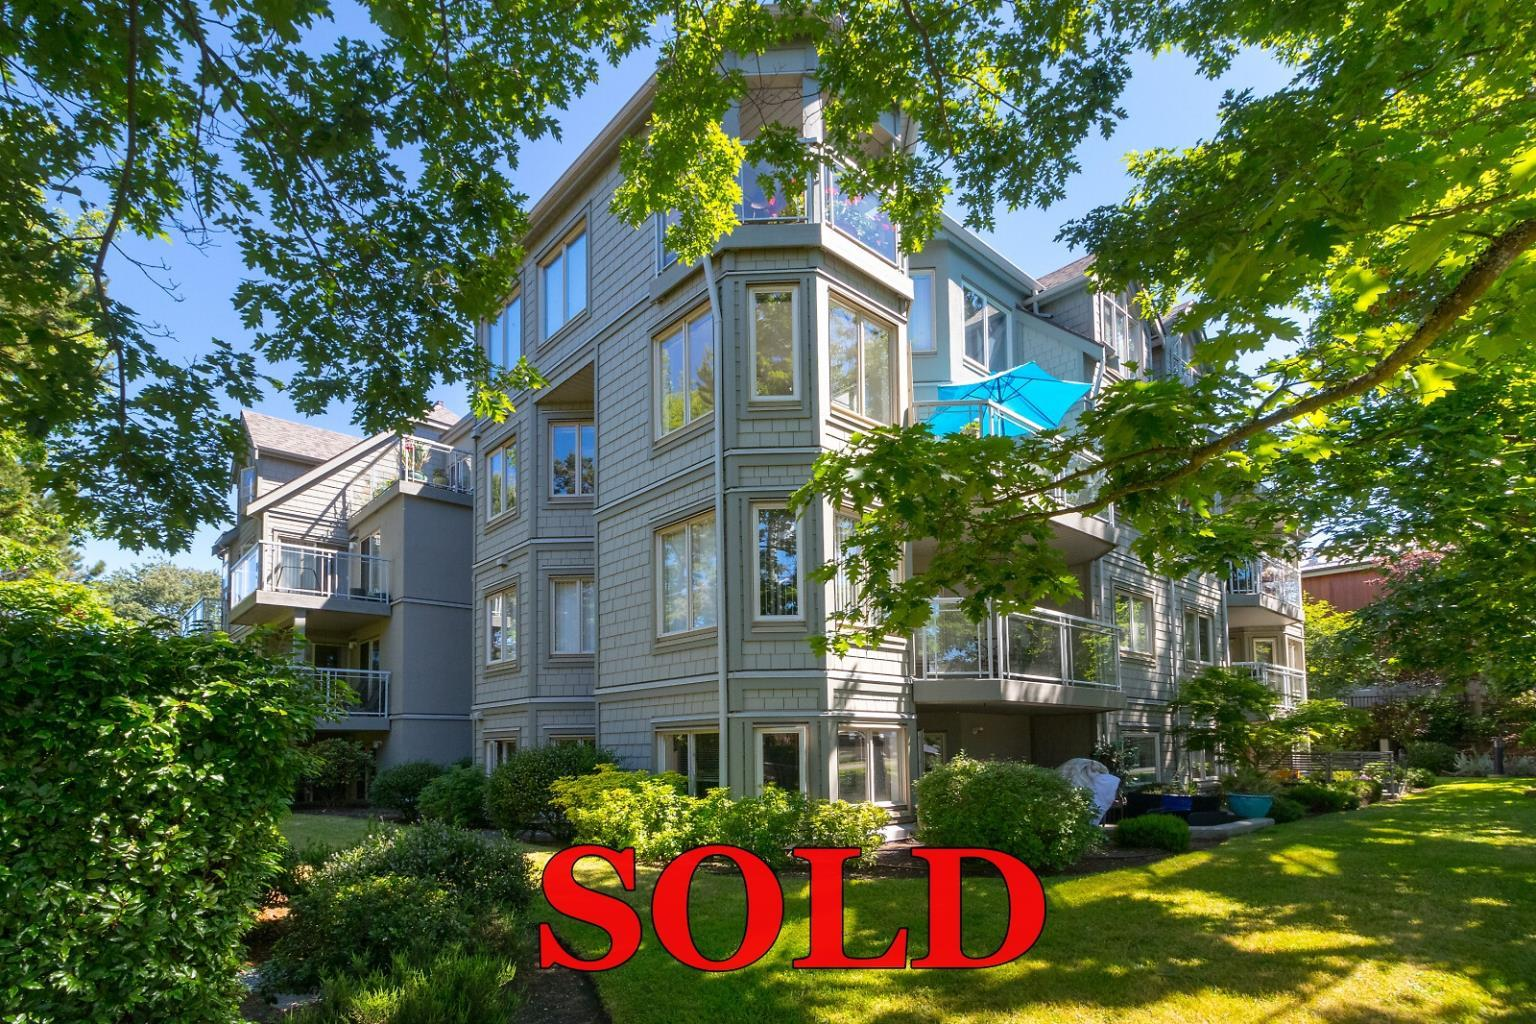 Condo Sold in Saanich East by David Stevens, Royal LePage, Victoria, BC